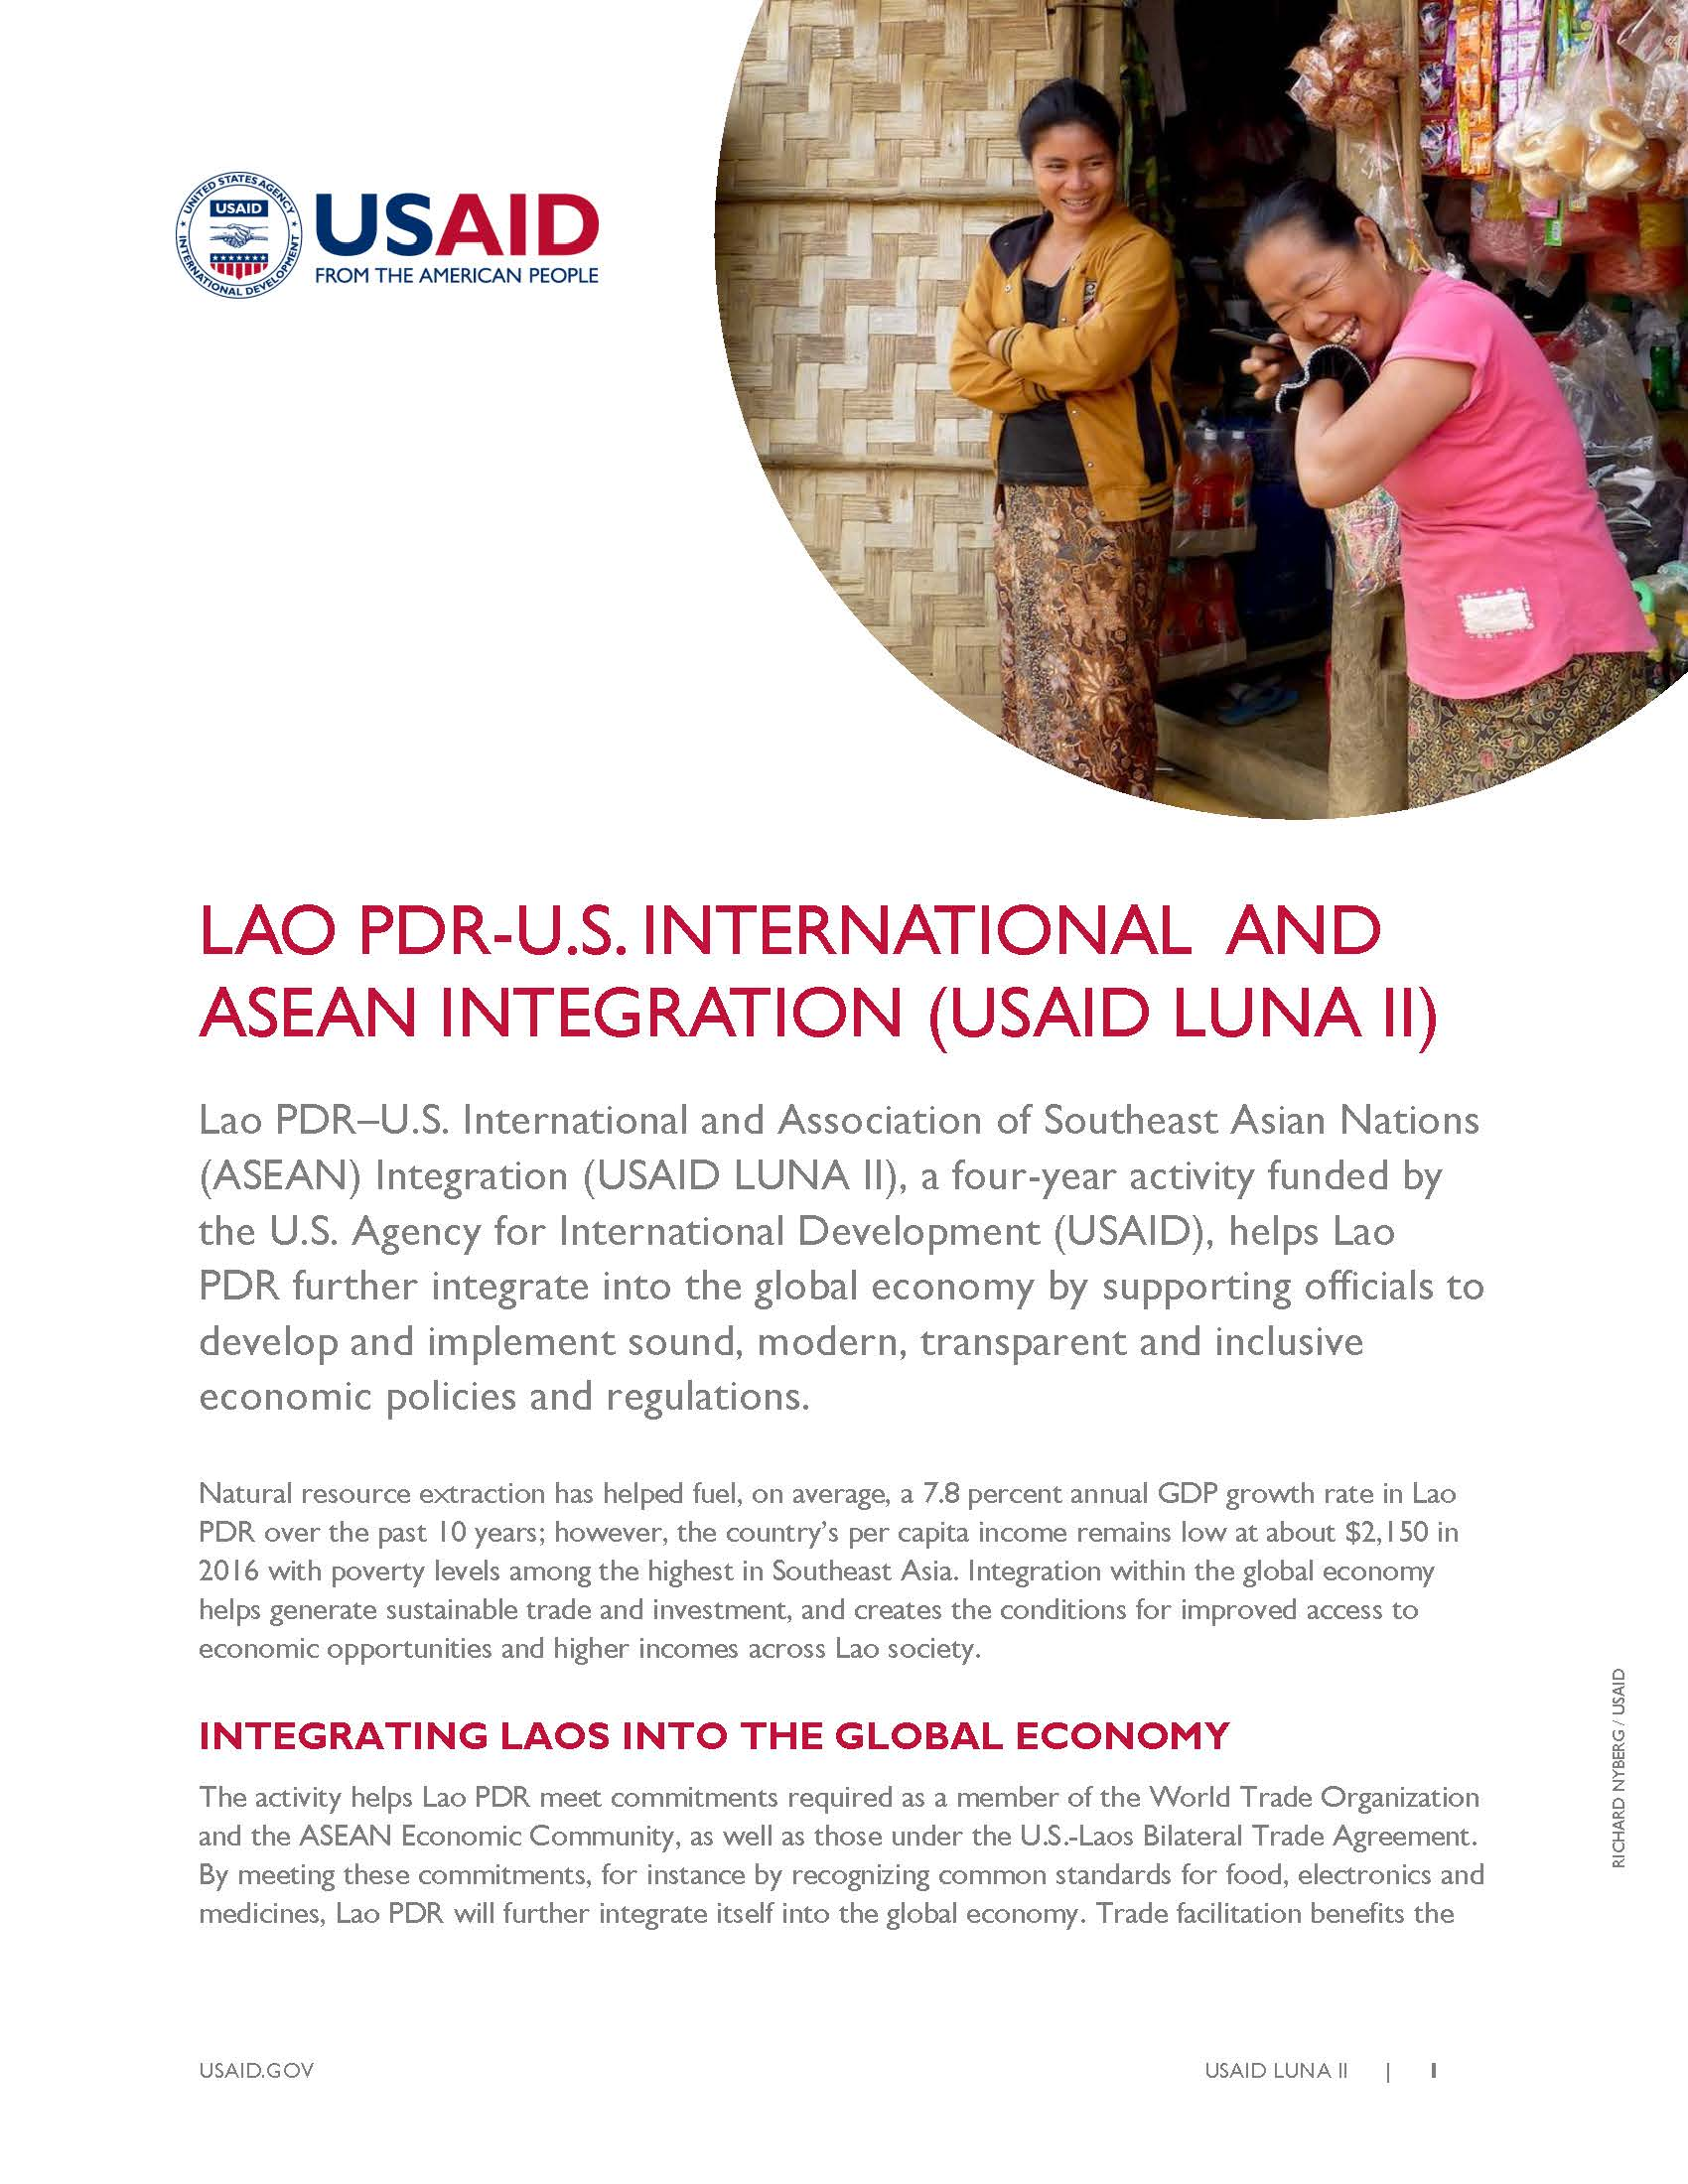 Lao PDR-U.S. International and Association of Southeast Asian Nations  Integration